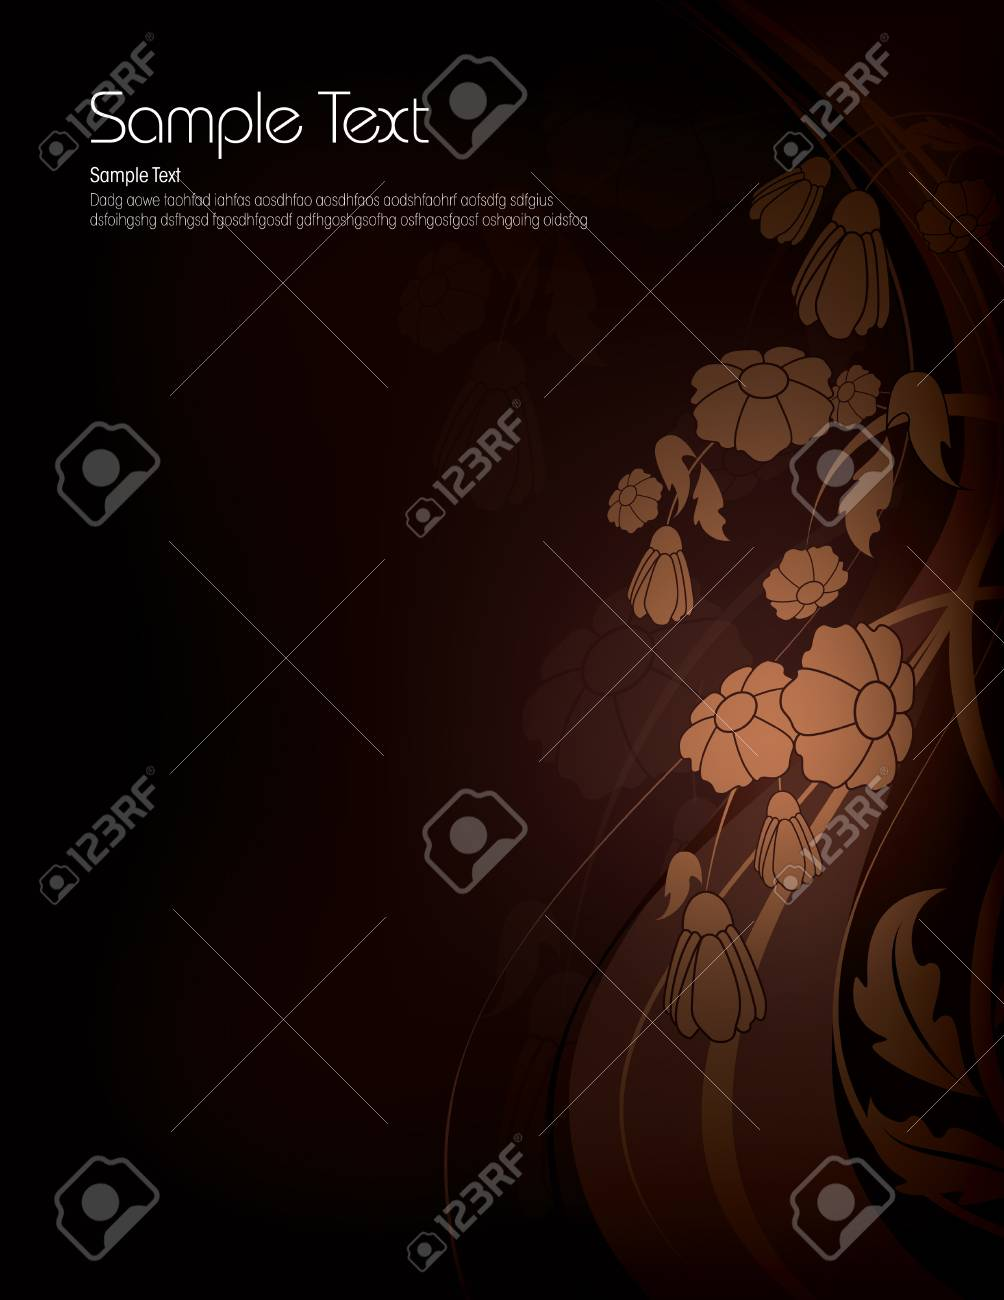 Dark Floral Background With Shiny Brown Flowers Royalty Free